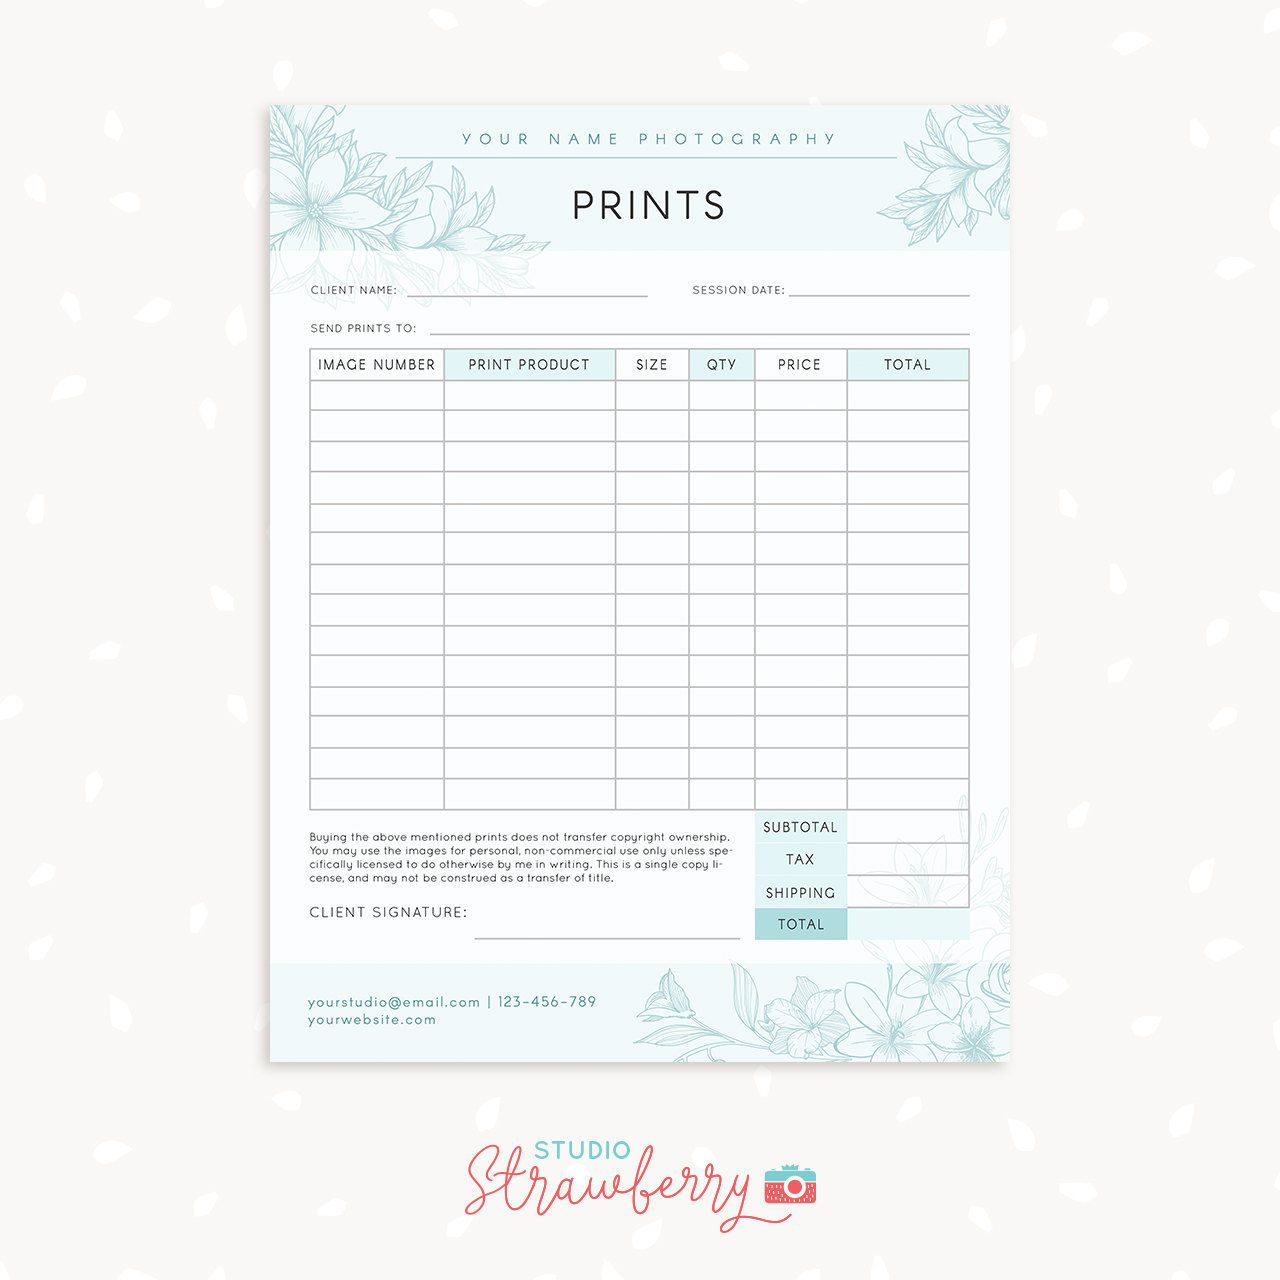 Order Form Template Floral Photography Order Form Photography